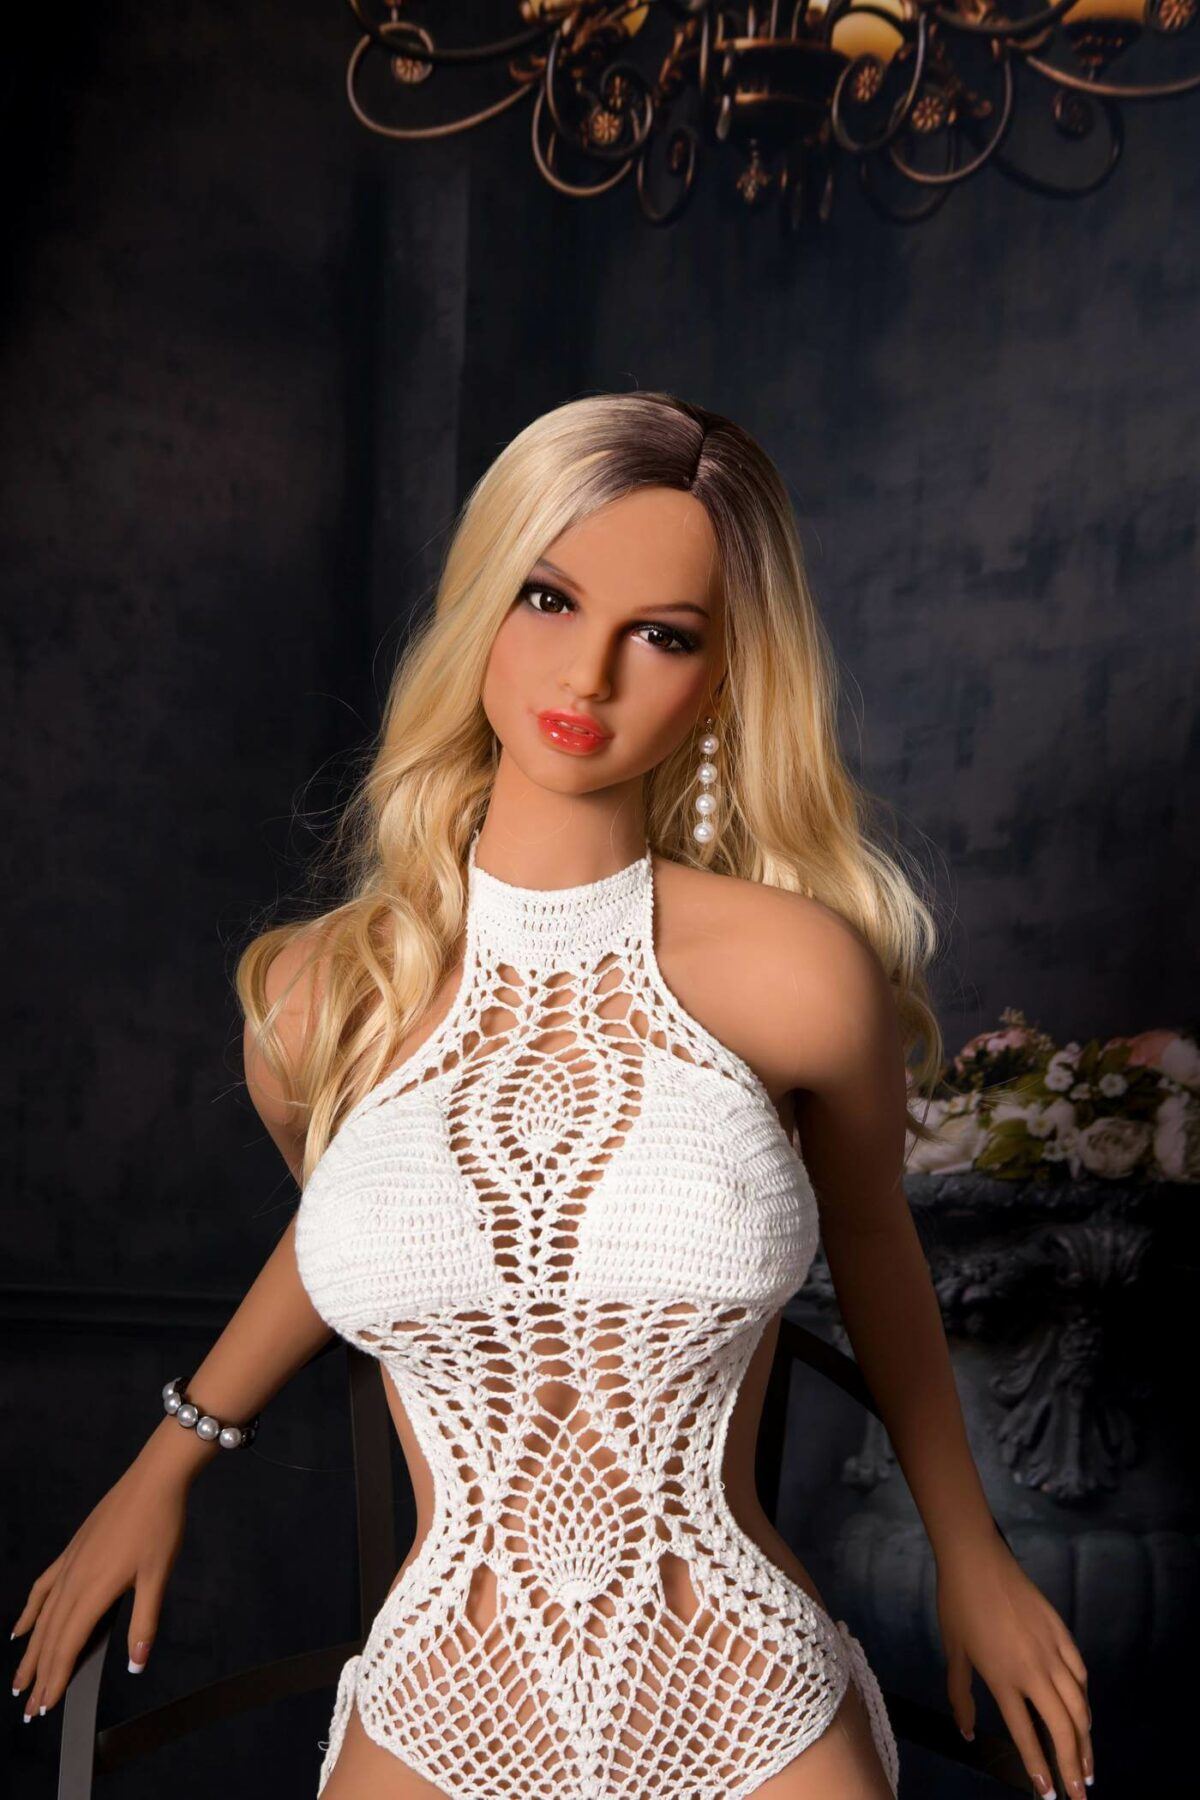 Skinny Blonde Sex Doll - Prudence